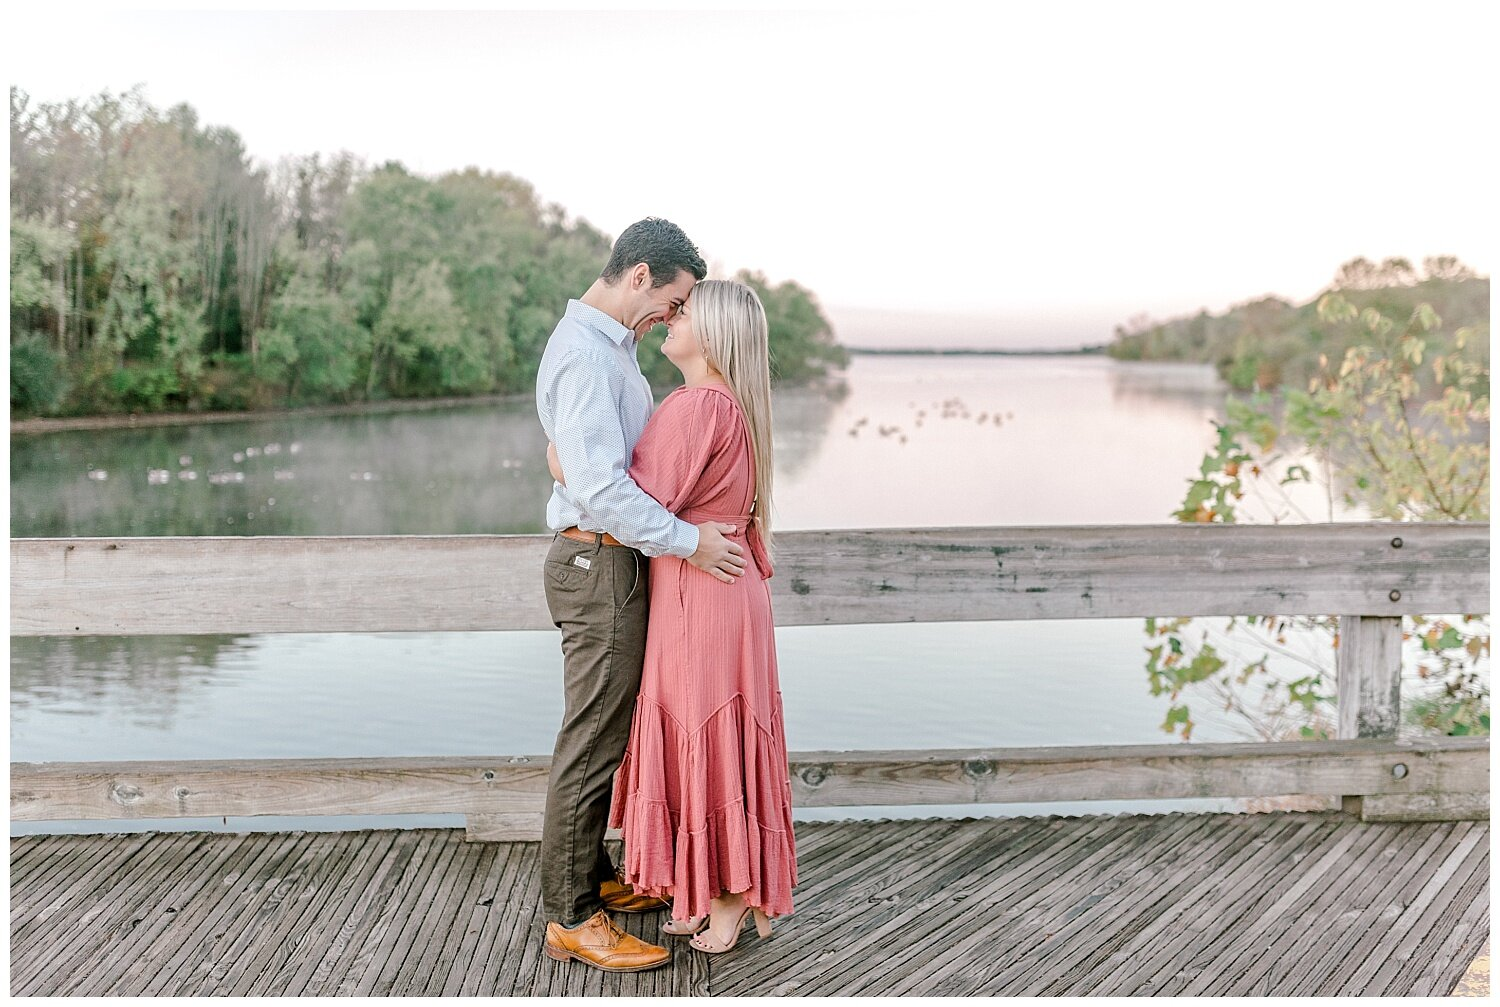 Peace Valley Park Doylestown bucks county PA fall sunrise engagement session  lehigh valley pennsylvania based wedding and lifestyle photographer Jeannie Lytle of Lytle Photography Company_0003.jpg